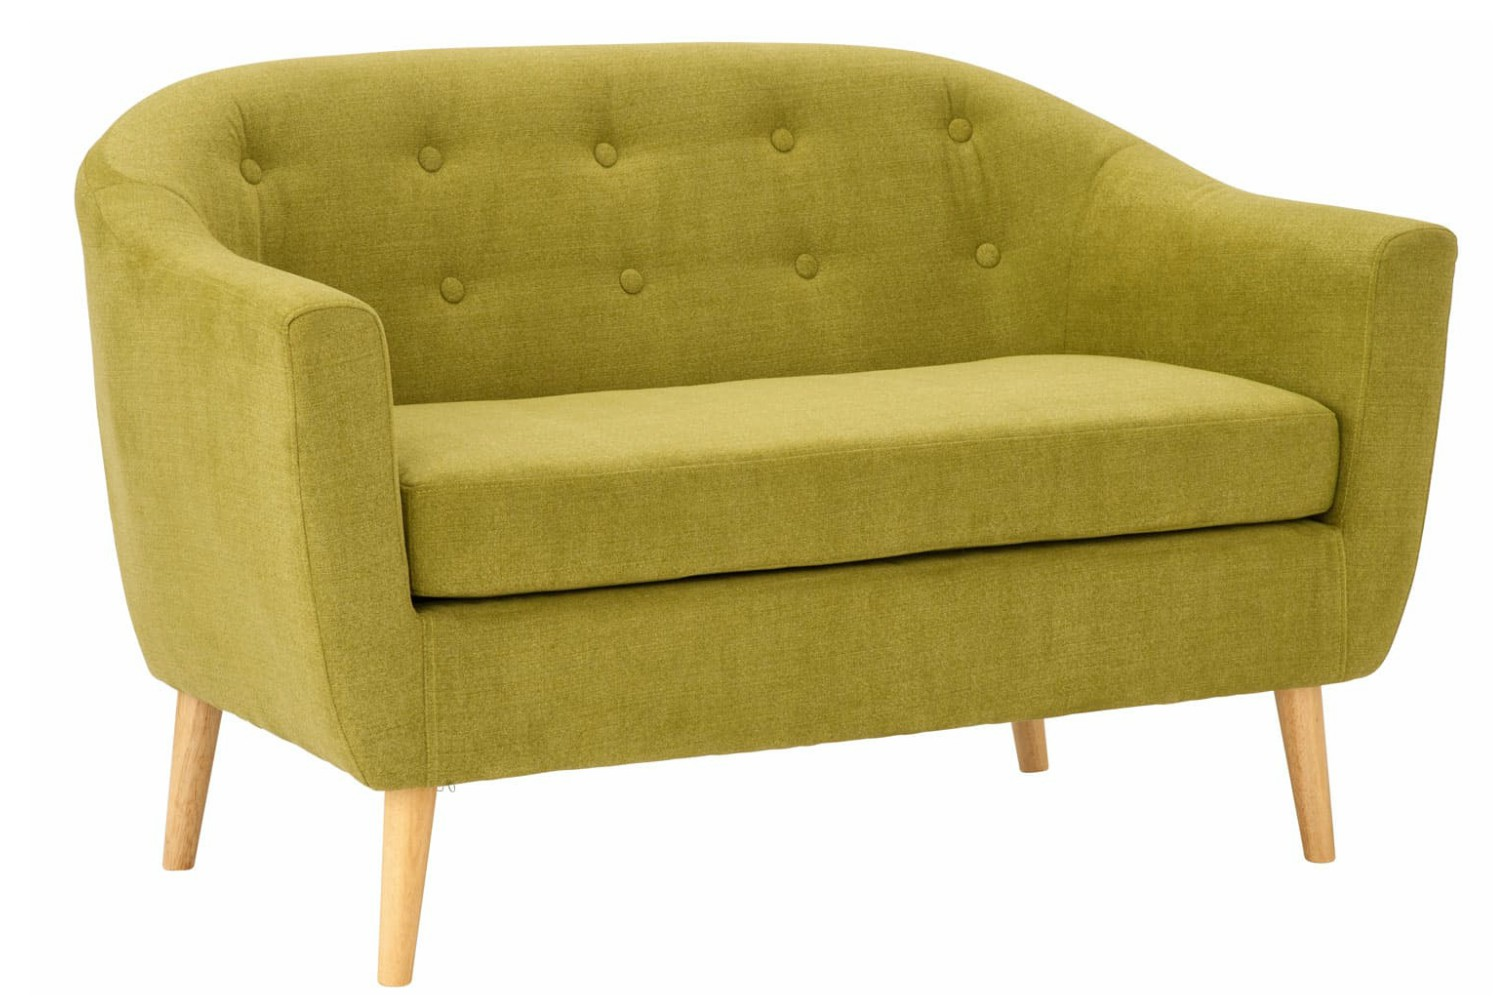 tub chair covers ireland what a meaning green 2 seater sofa brokeasshome